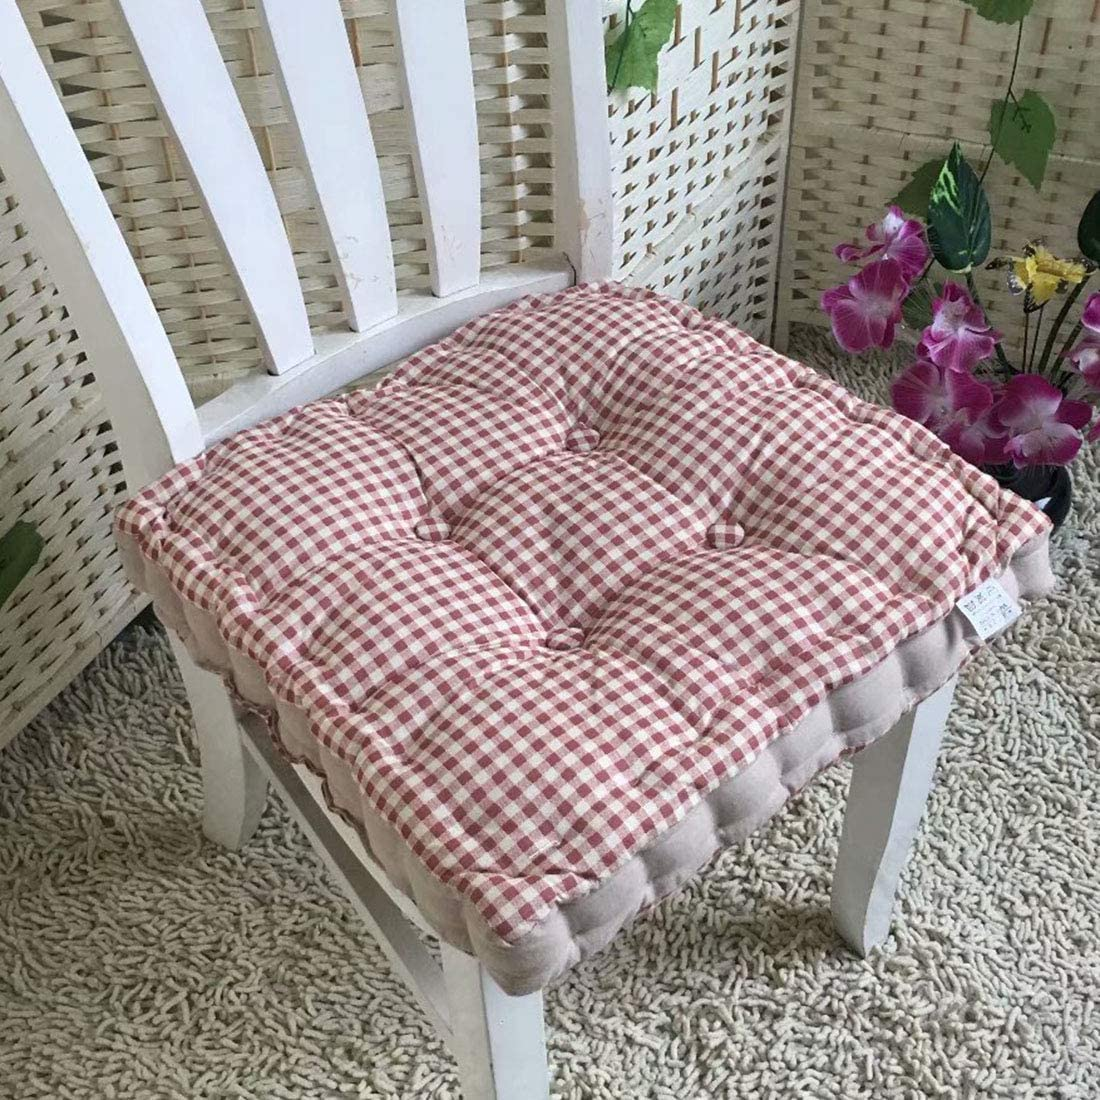 vctops Bohemian Printed Patchwork Chair Pads, 100% Cotton Cover, Square Soft Thicken Dining Seat Cushion (305 Red, 16